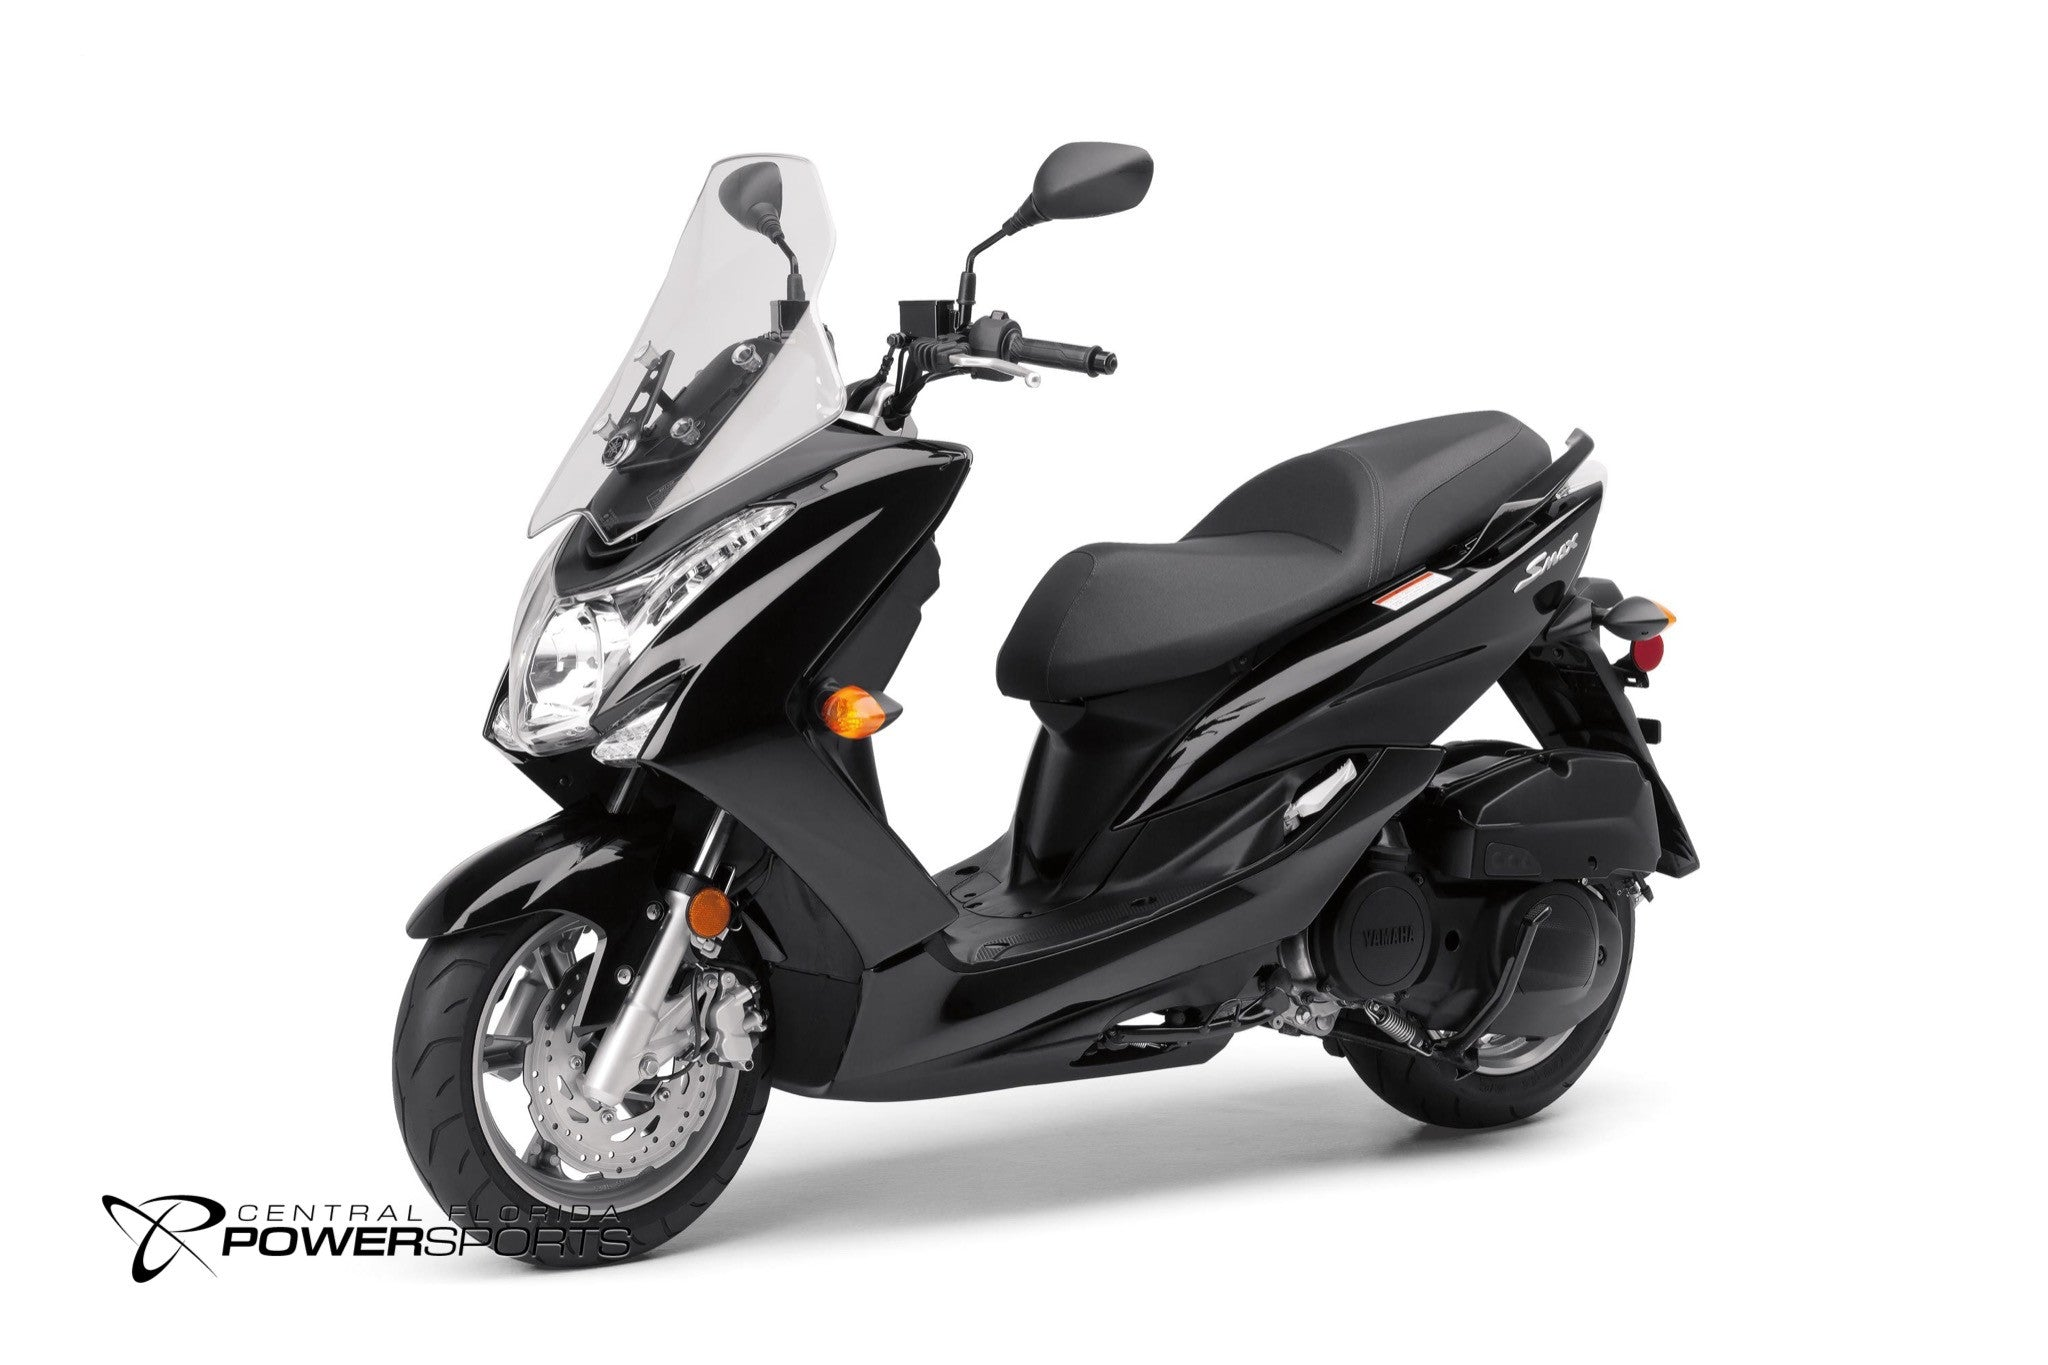 2017 yamaha smax scooter for sale 1 dealer kissimmee central florida powersports. Black Bedroom Furniture Sets. Home Design Ideas